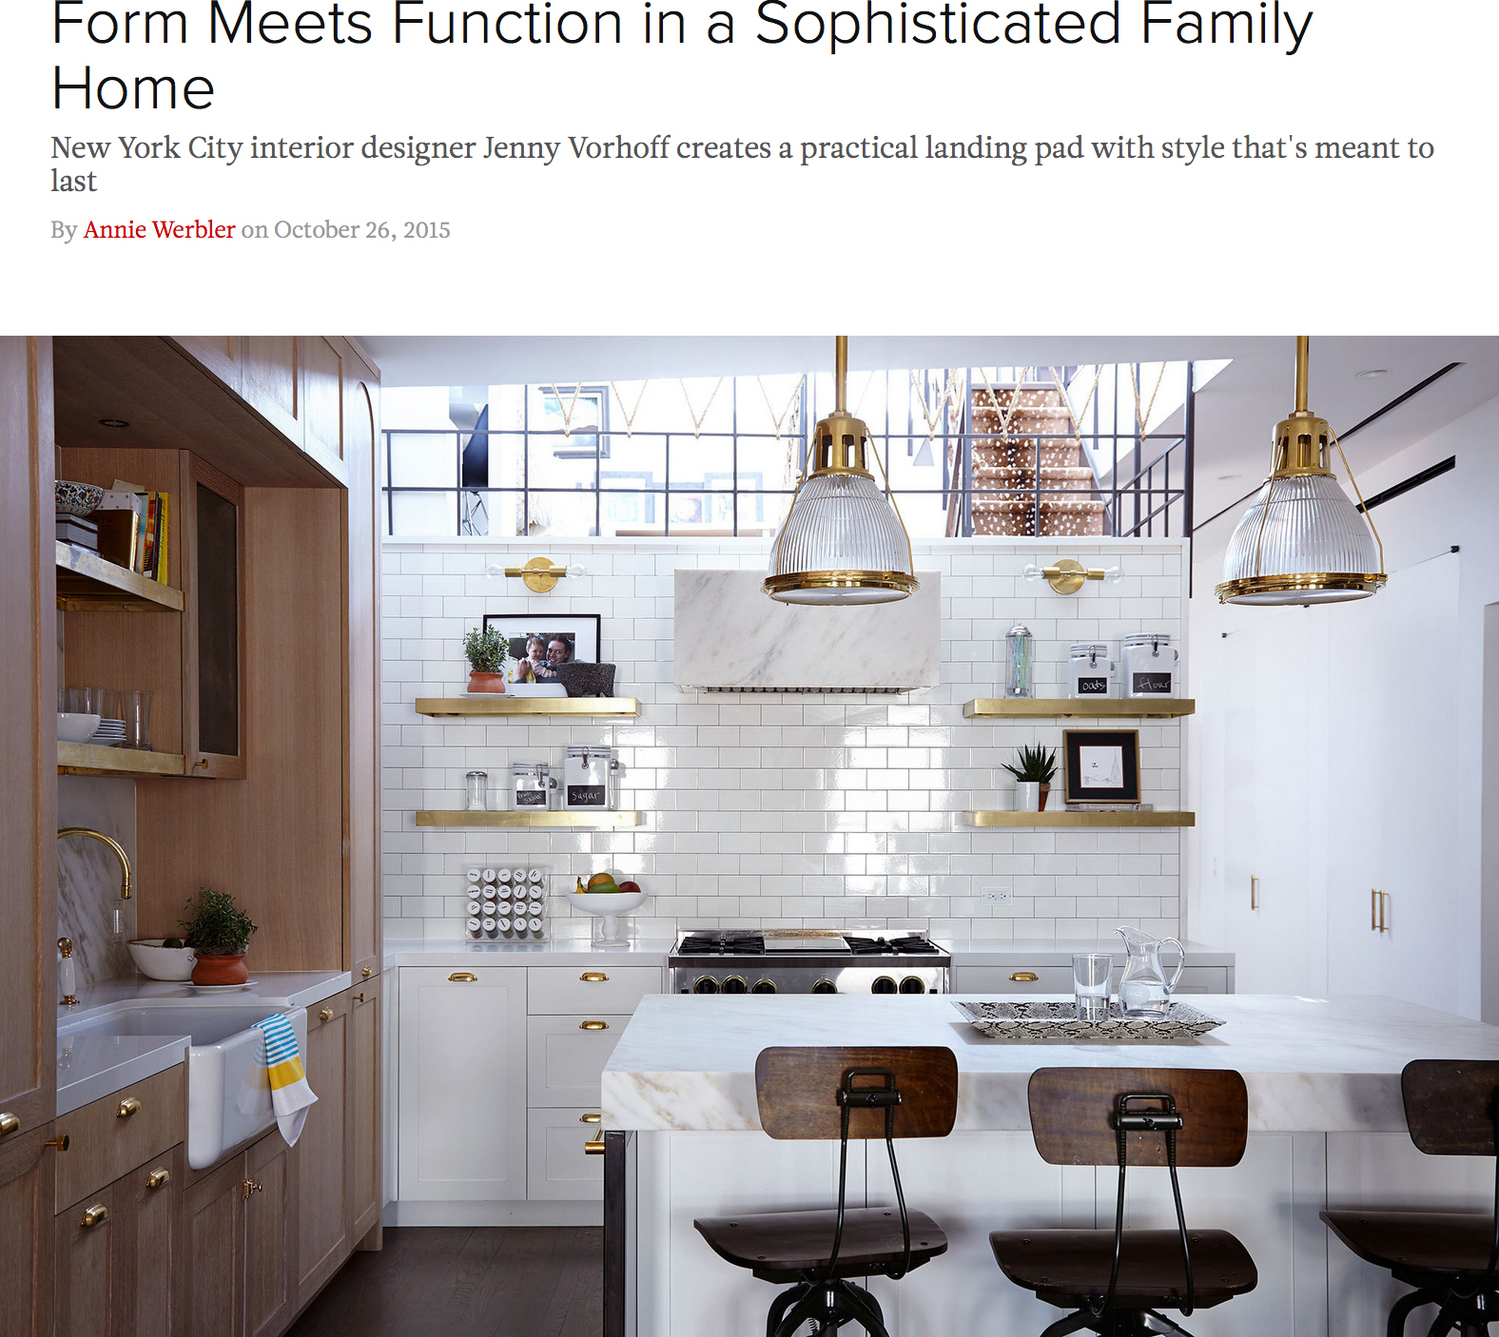 Form Meets Function in a Sophisticated Family Home